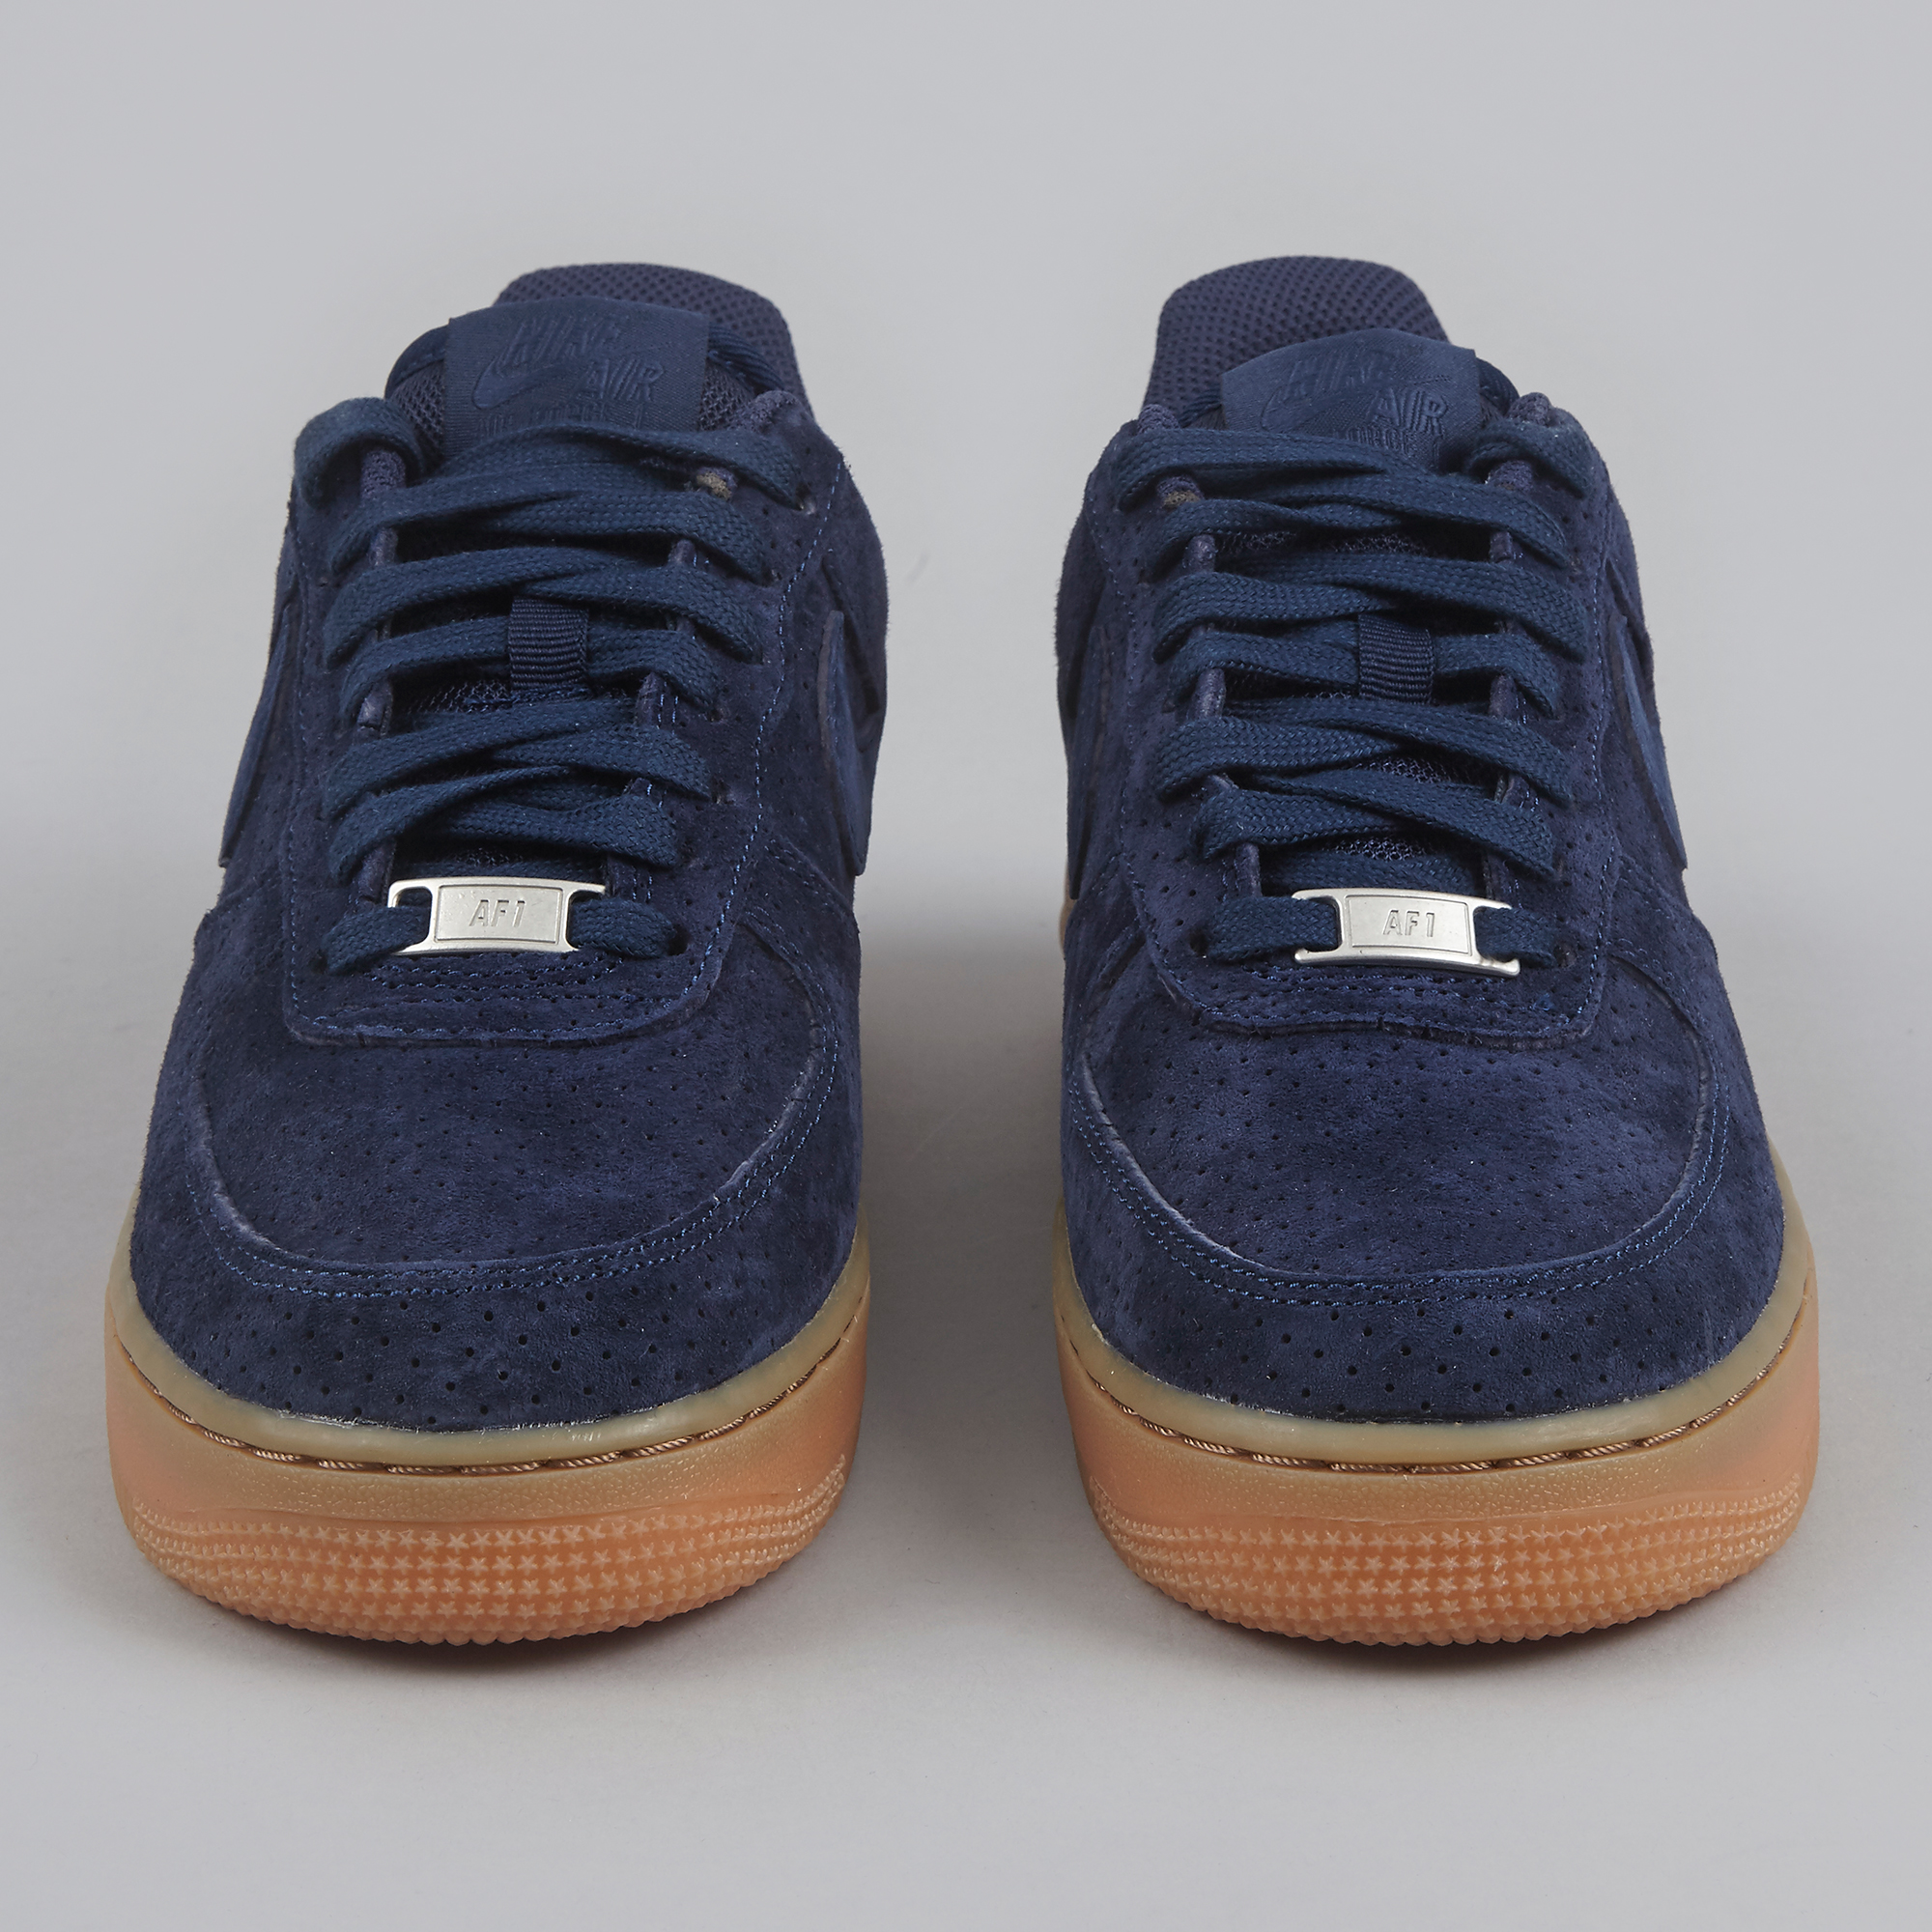 Nike Air Force 1 '07 Suede Midnight Navy